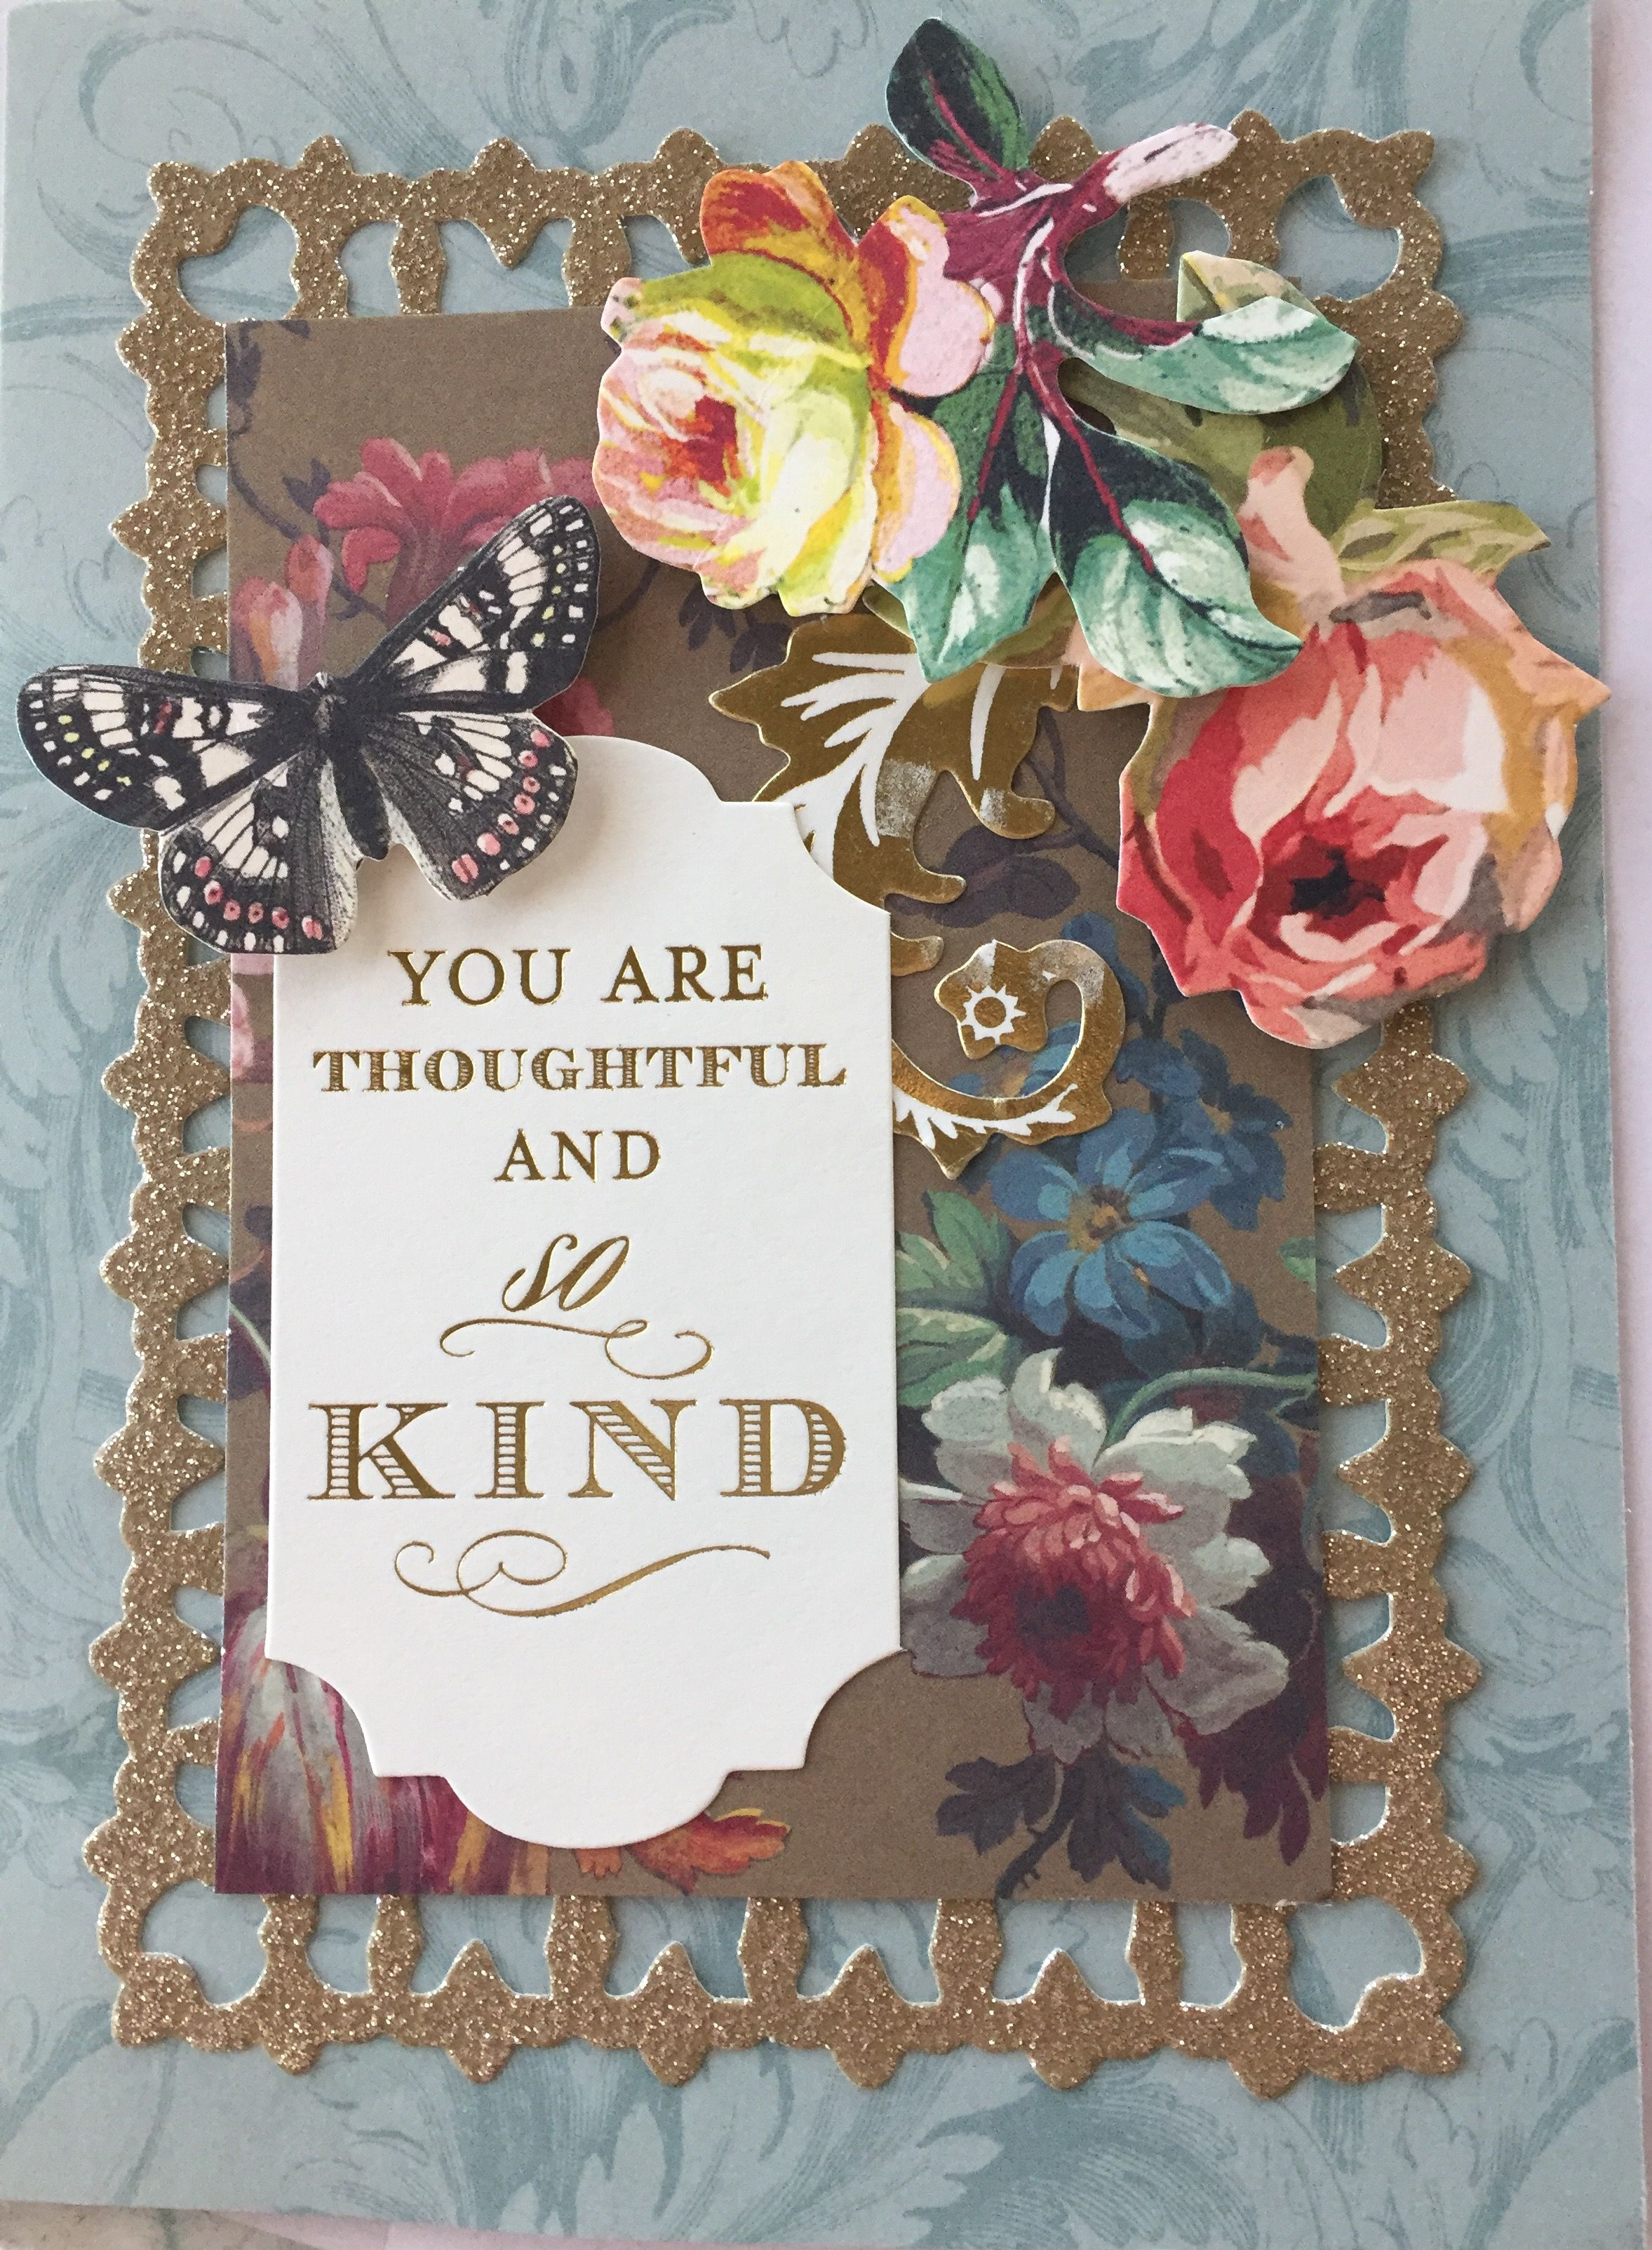 Pin By Laura Reynolds On Just Anna Pinterest Anna Griffin Anna